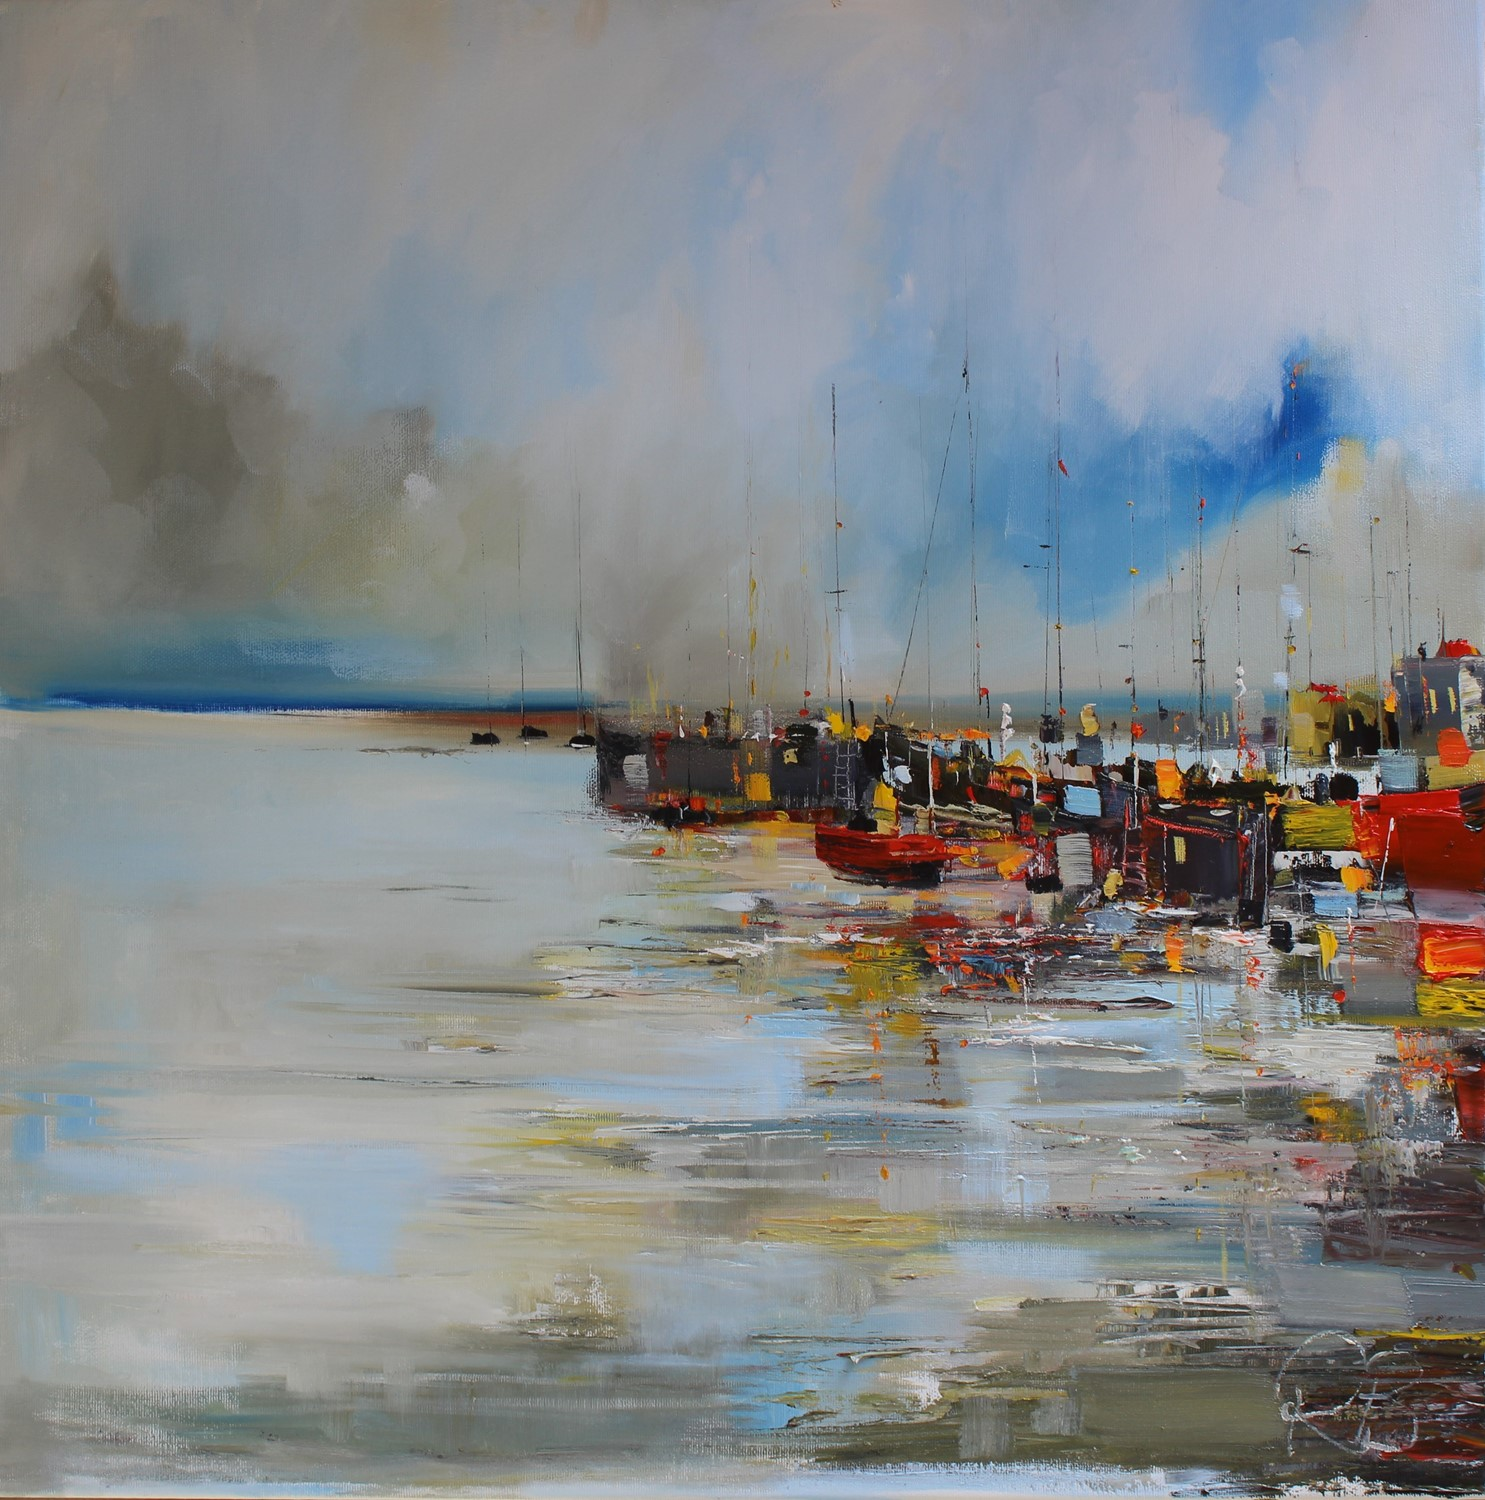 'A Clutter of Colour at the Harbour' by artist Rosanne Barr